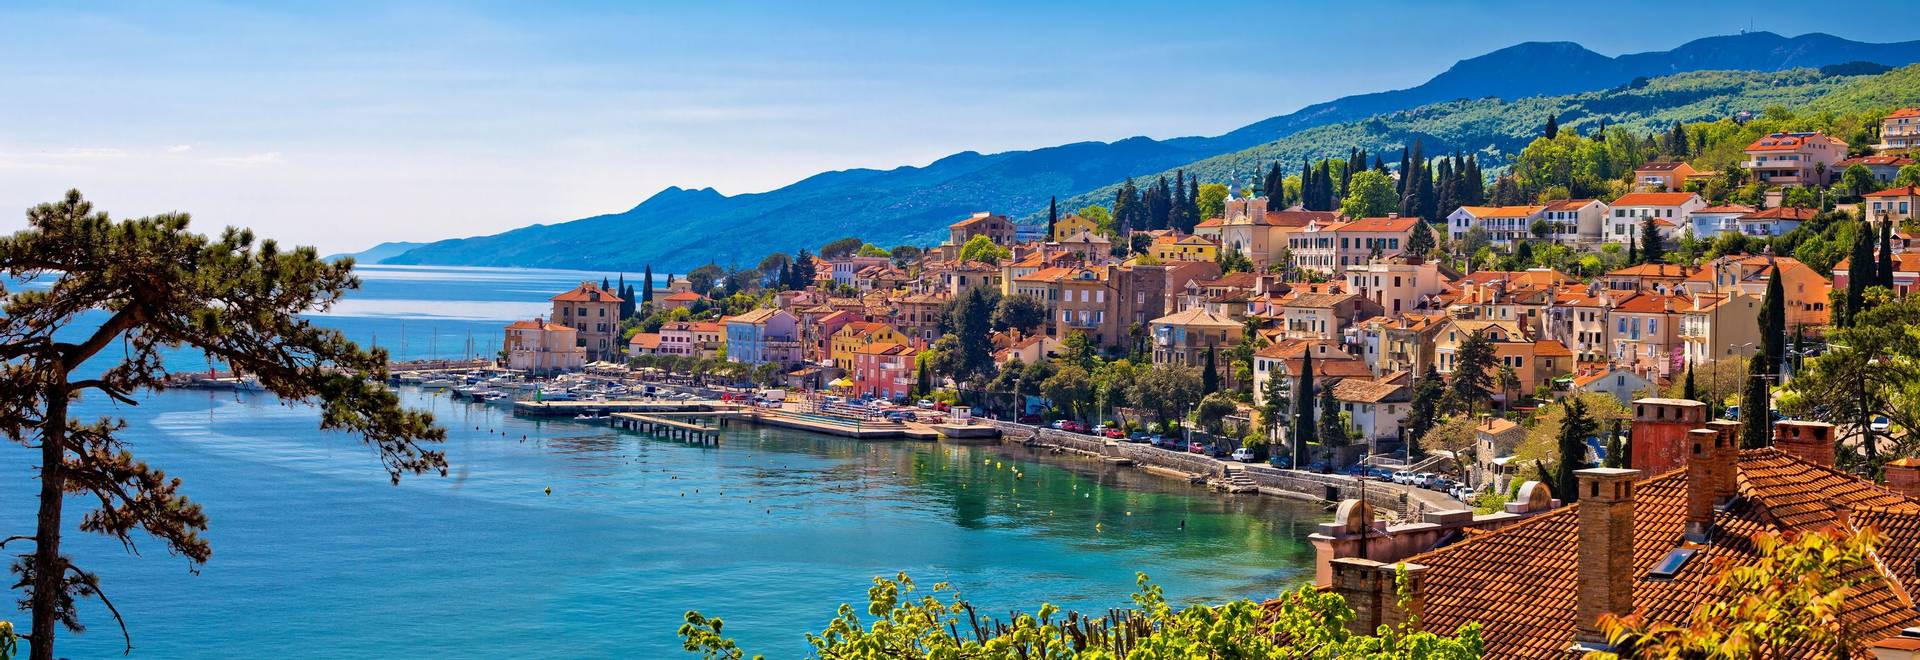 GettyImages-1149649168 Town Of Volosko Waterfront Panoramic View.jpg